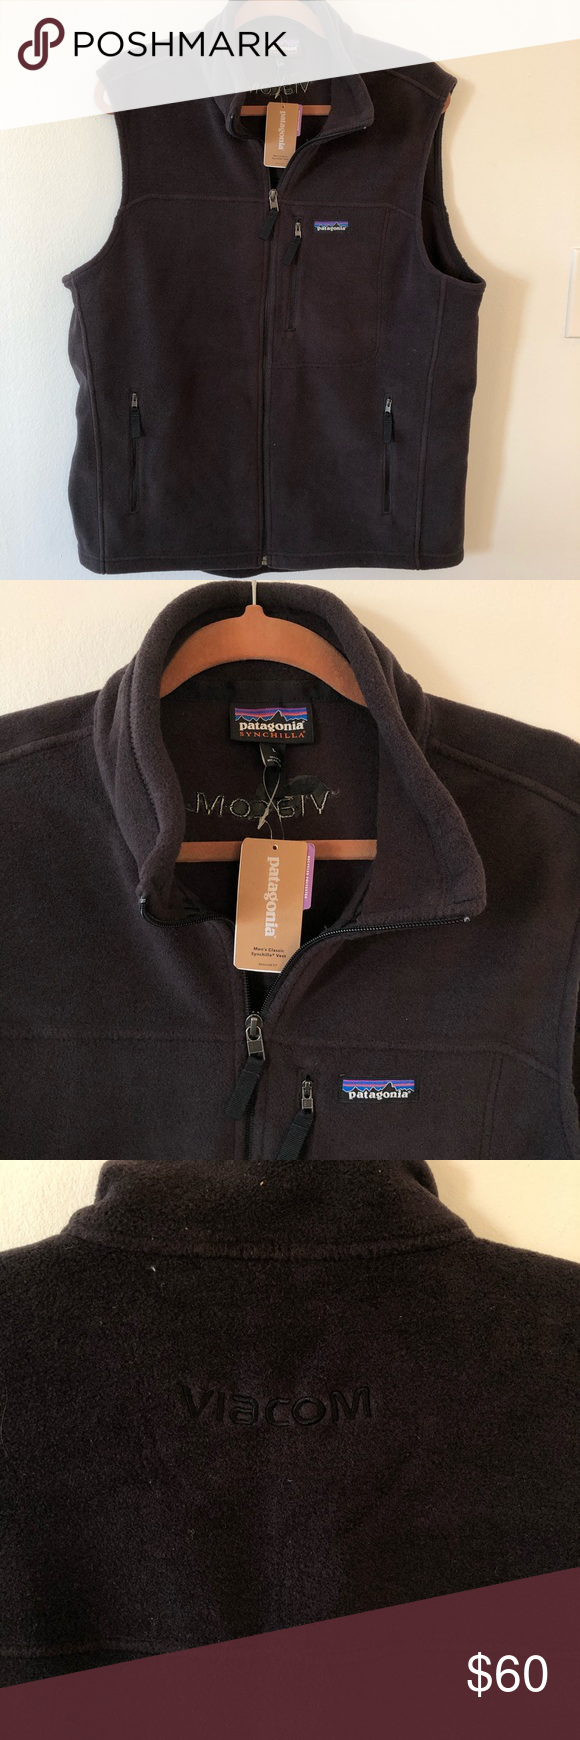 """Patagonia men's classic Synchilla vest black large Patagonia men's classic Synchilla vest black in size large. New with tags. There's is a black Viacom logo embroidery in the back as seen in the picture.   Measurements  Armpit to armpit 24"""" Length from shoulder to hem 27""""  B-0227 Patagonia Jackets & Coats Vests"""